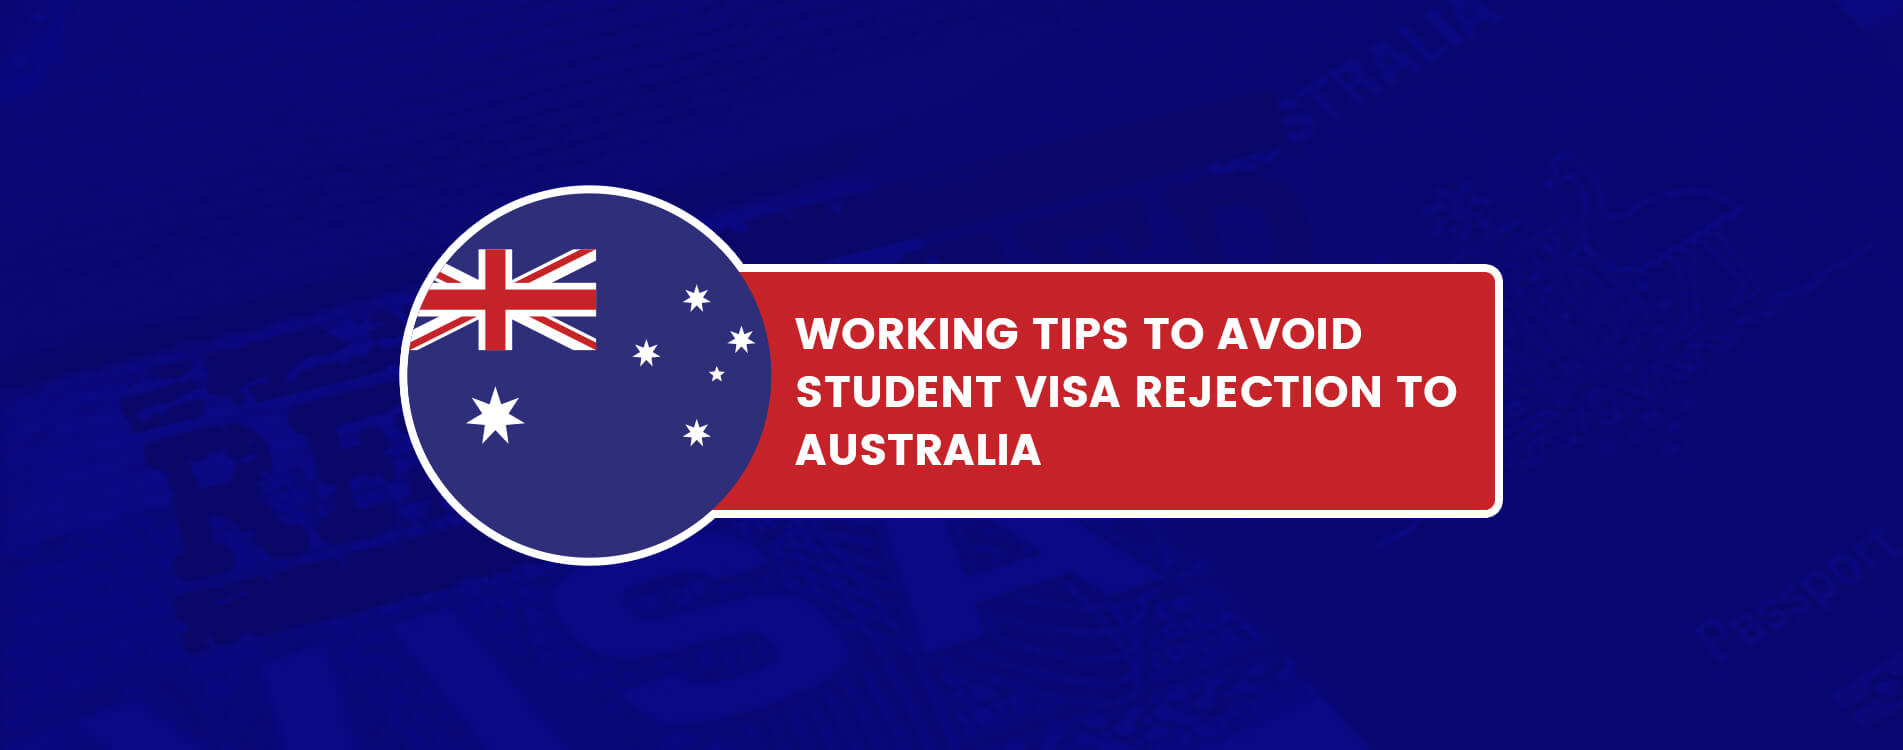 Working Tips to Avoid Student Visa Rejection to Australia